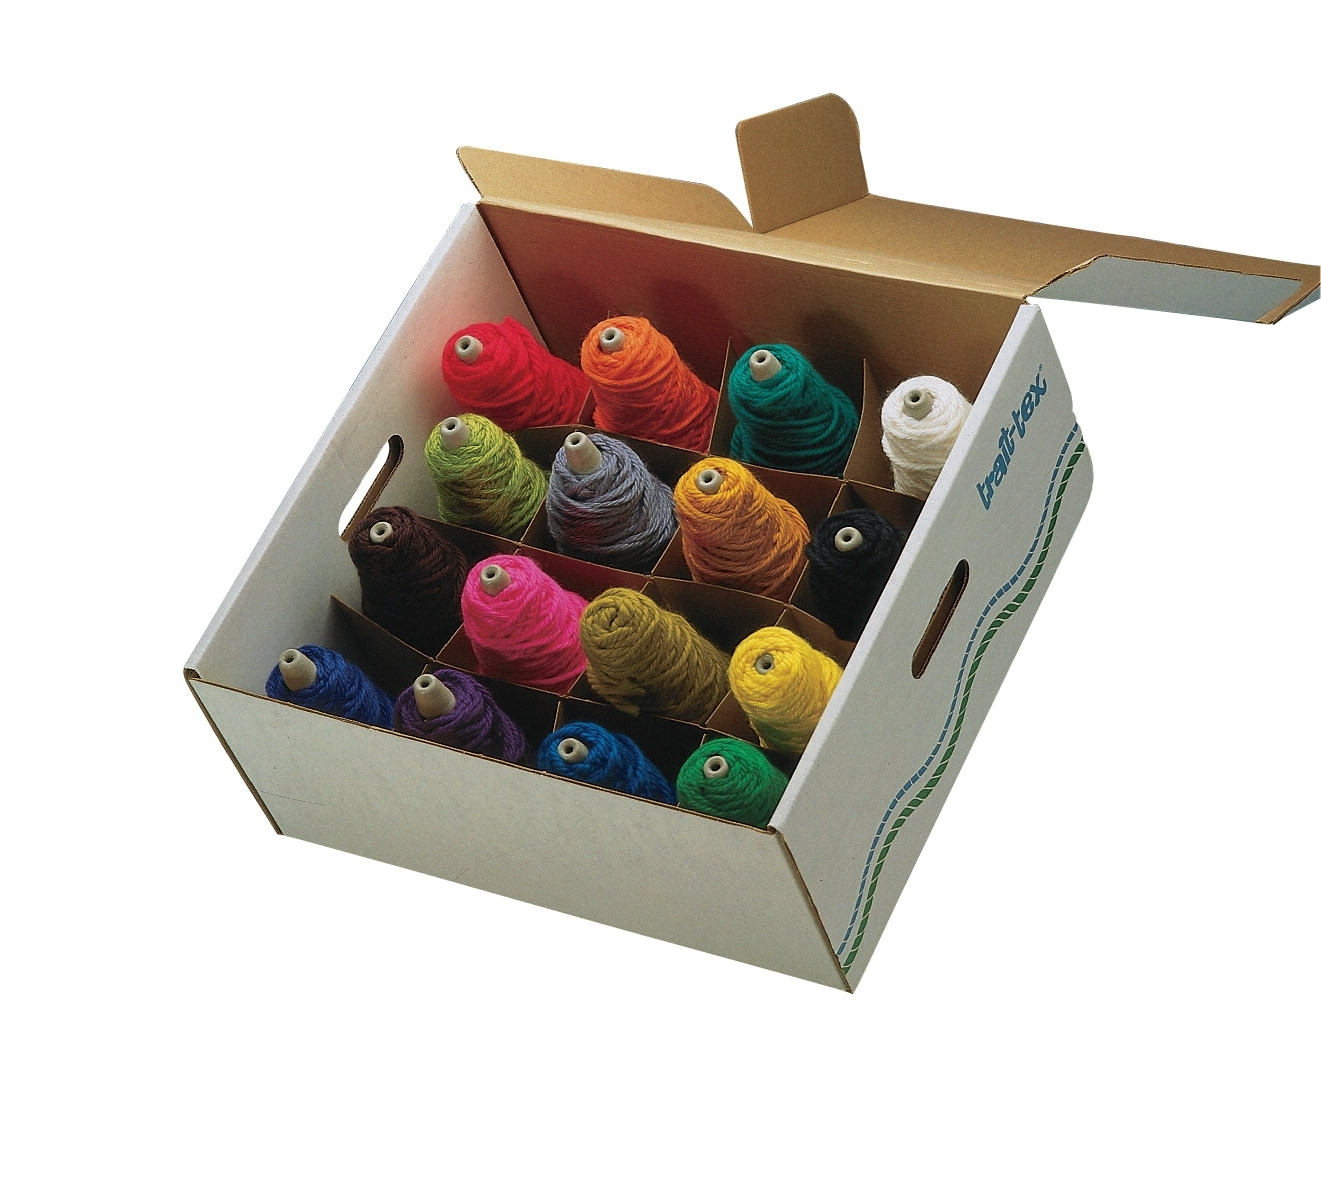 Learning: Classroom Arts & Crafts Crafts Yarn Weaving & Knitting - 413663 - Trait Tex Acrylic Washable Standard-weight Yarn Cone Set; 5670 Yd Dispenser Box; Assorted Bright Color; 8 Oz; Set Of 9 413663